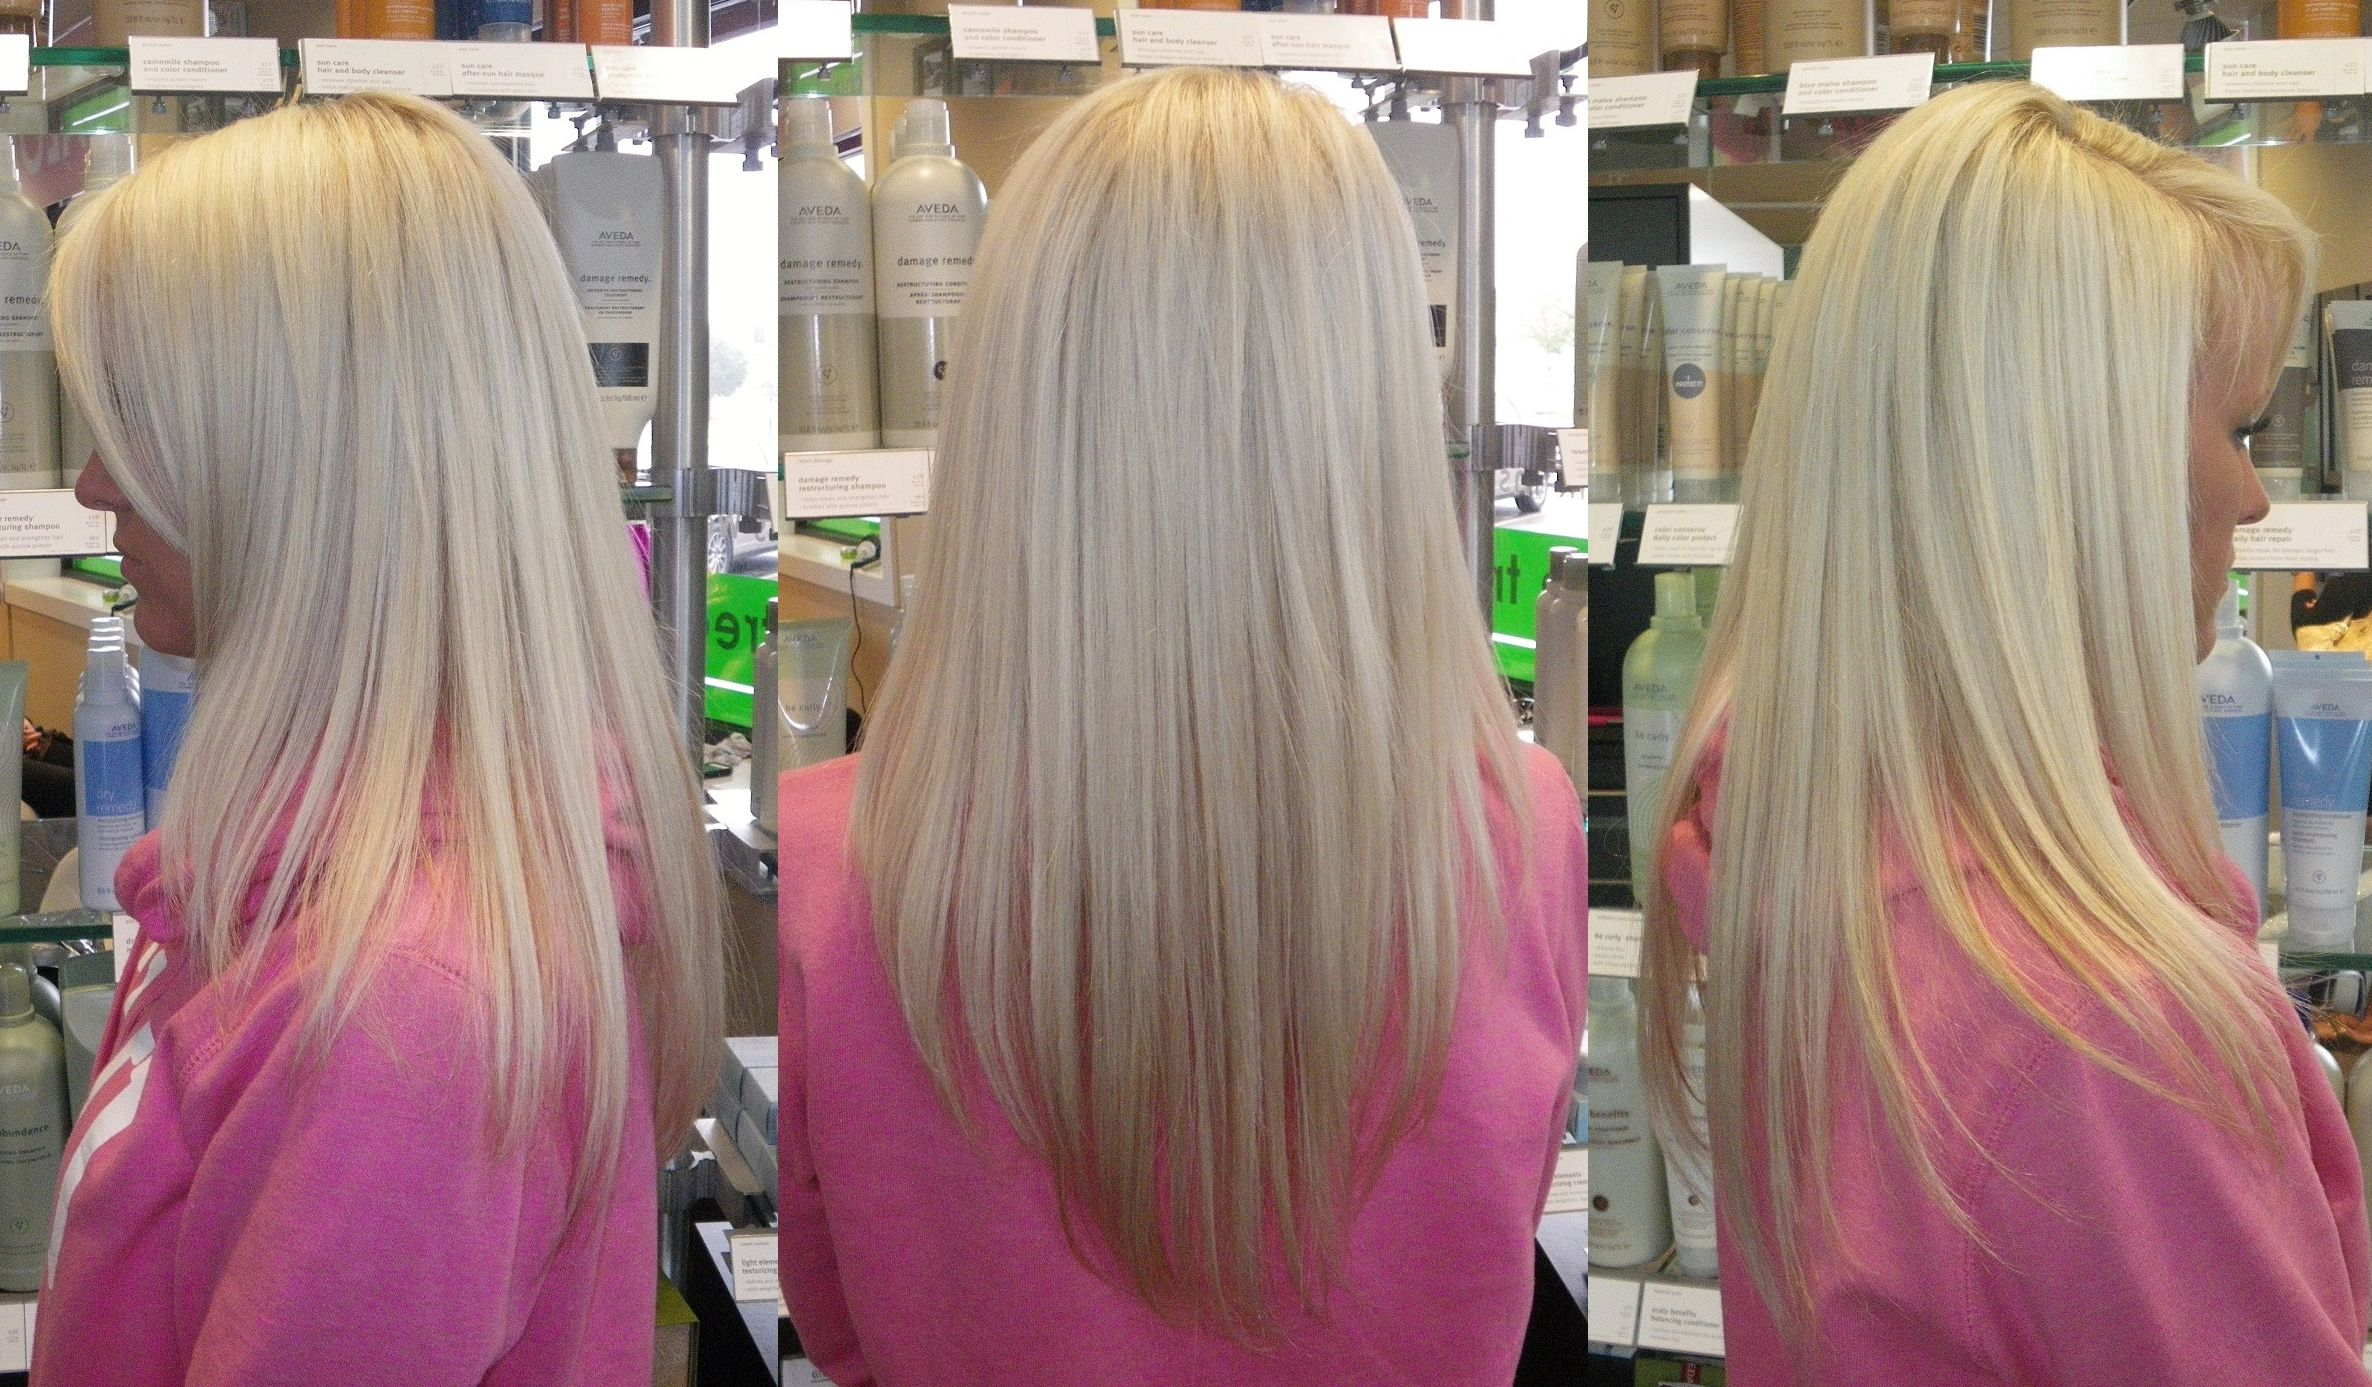 you won't believe this blondie is naturally SEVEN LEVELS DARKER! She looks completely like a natural blonde without brassy color at all!